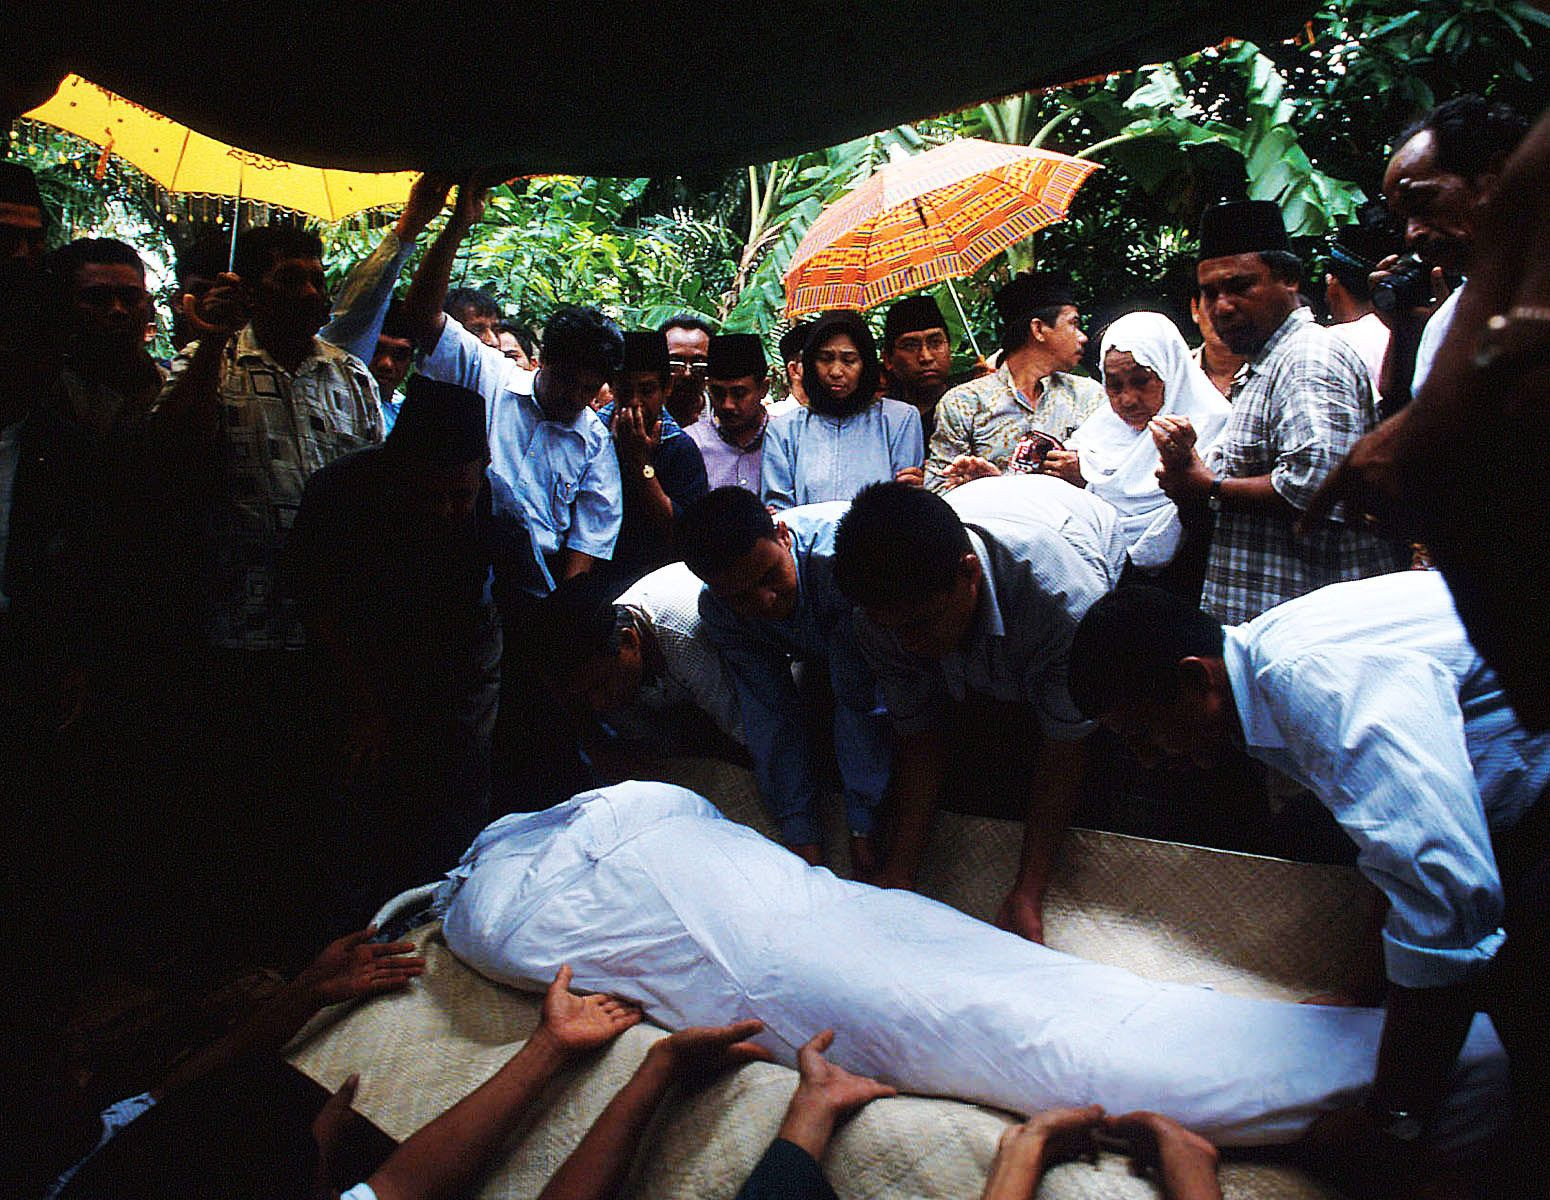 Burying the body of Professor Dayan Dawood, a rector of the prestigious Syiah Kuala University, who has supported demilitarization in Aceh since 1998.On September 6th, he was killed on his way home by unidentified gunmen.